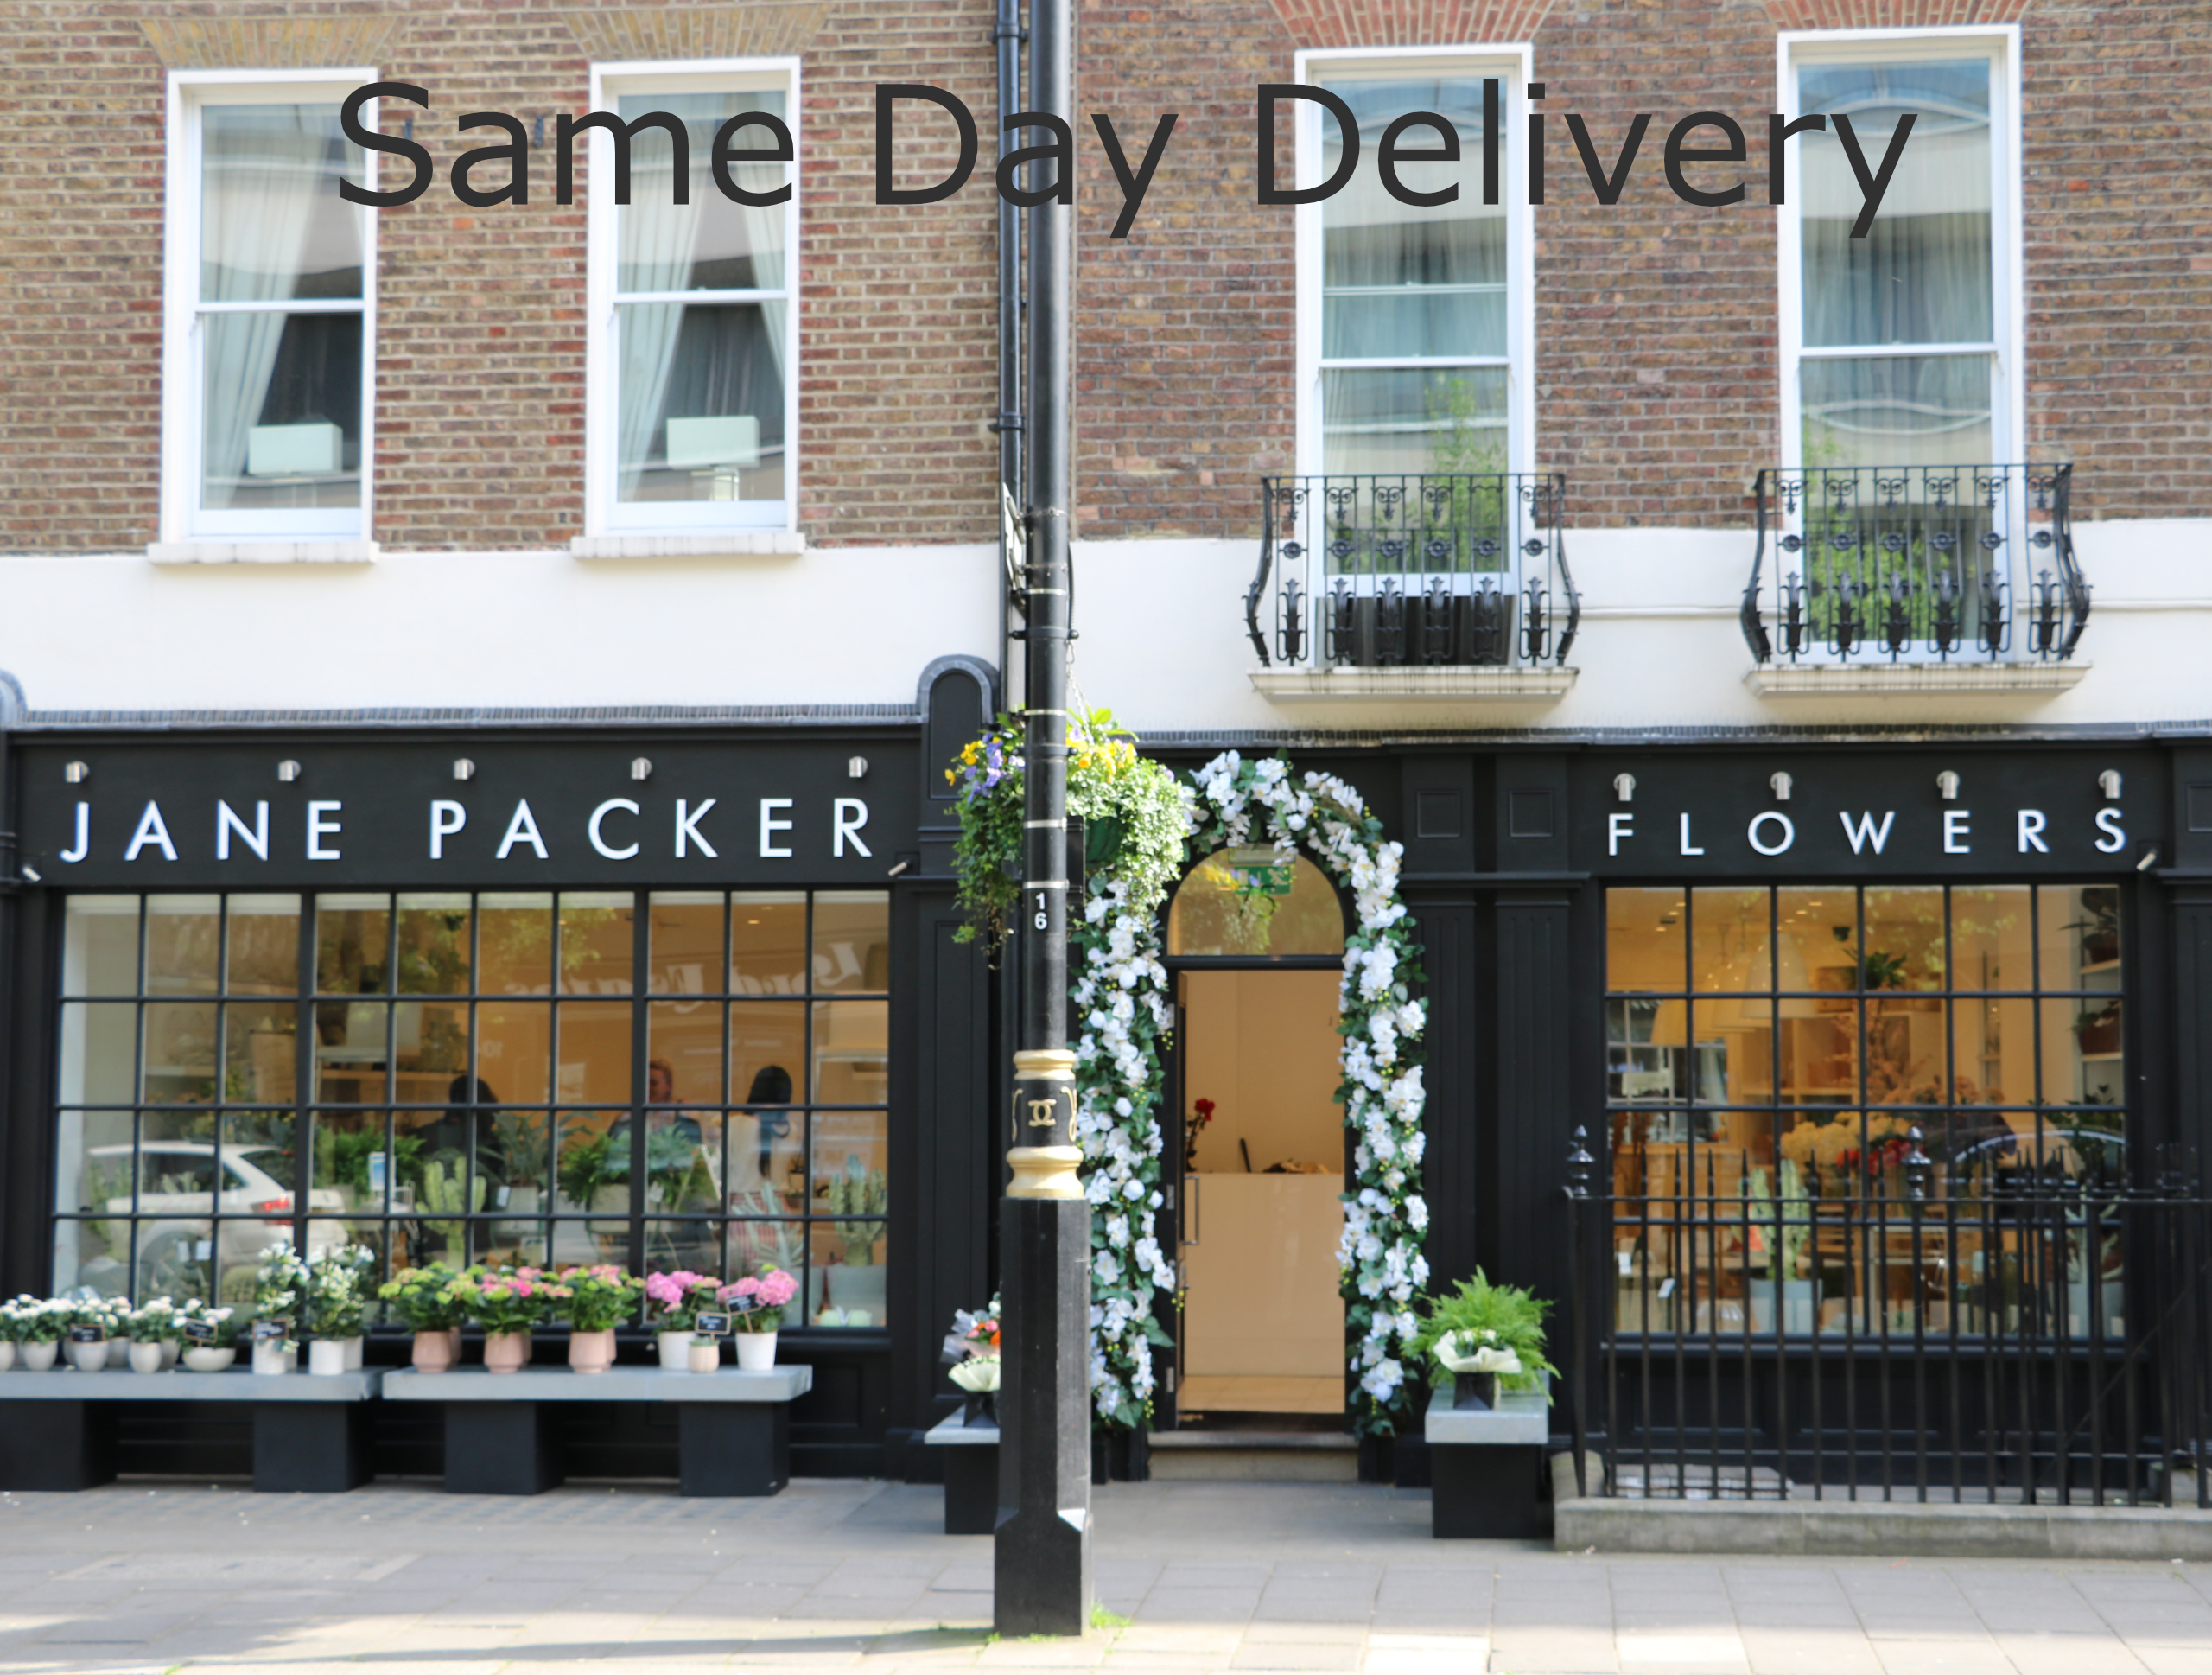 Same Day Delivery - London